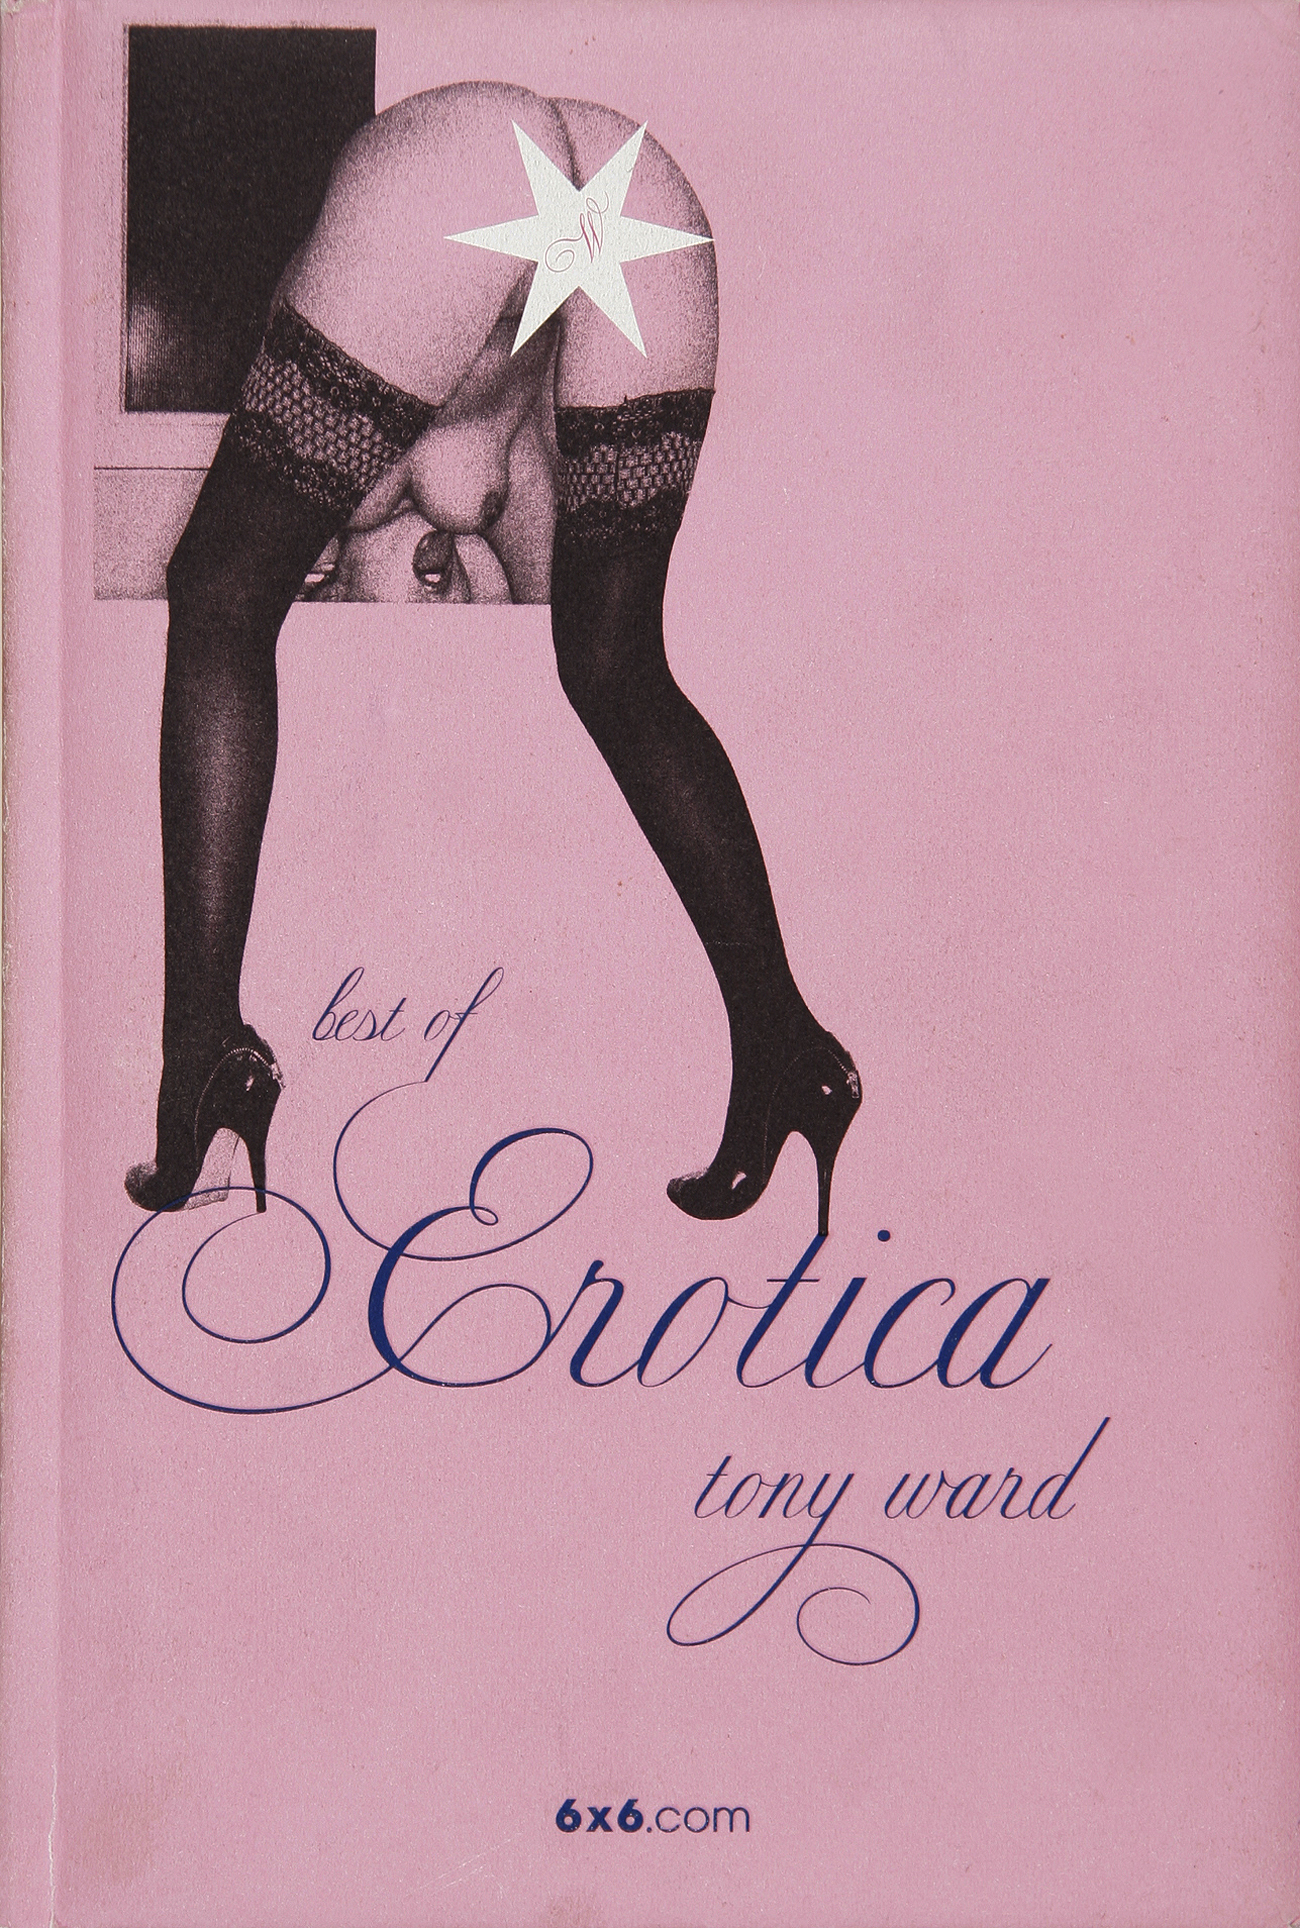 Tony_Ward_photography_book_best_of_erptoca_nudes_sex_hardcore_fashion